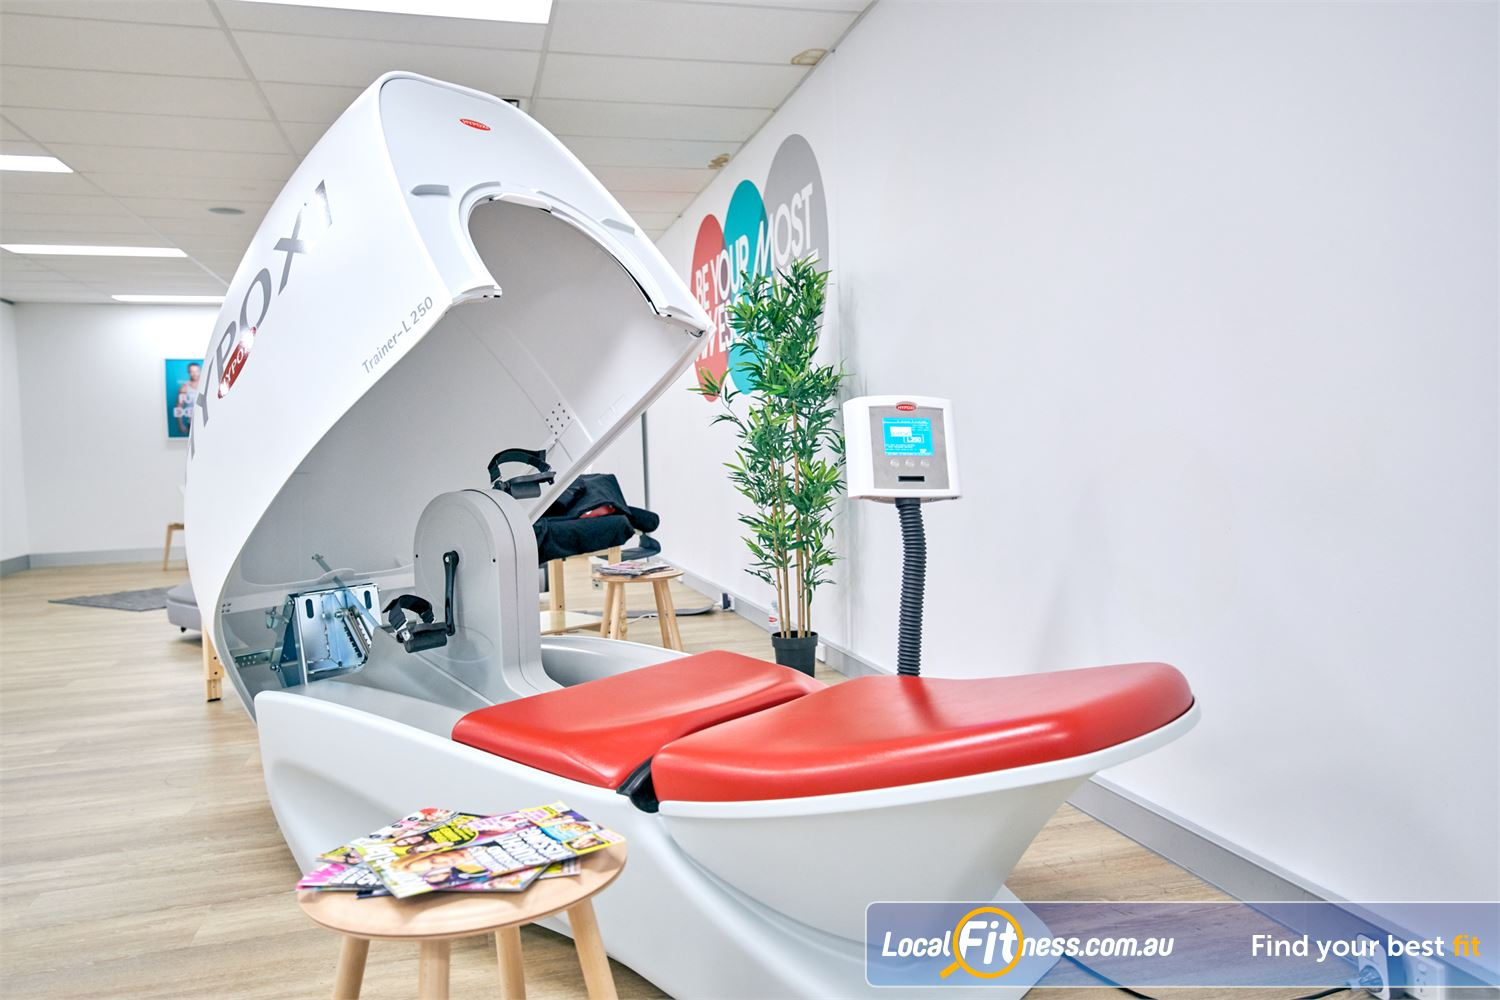 HYPOXI Weight Loss Near Richmond North HYPOXI Port Melbourne is great for men looking to lose those love handles.